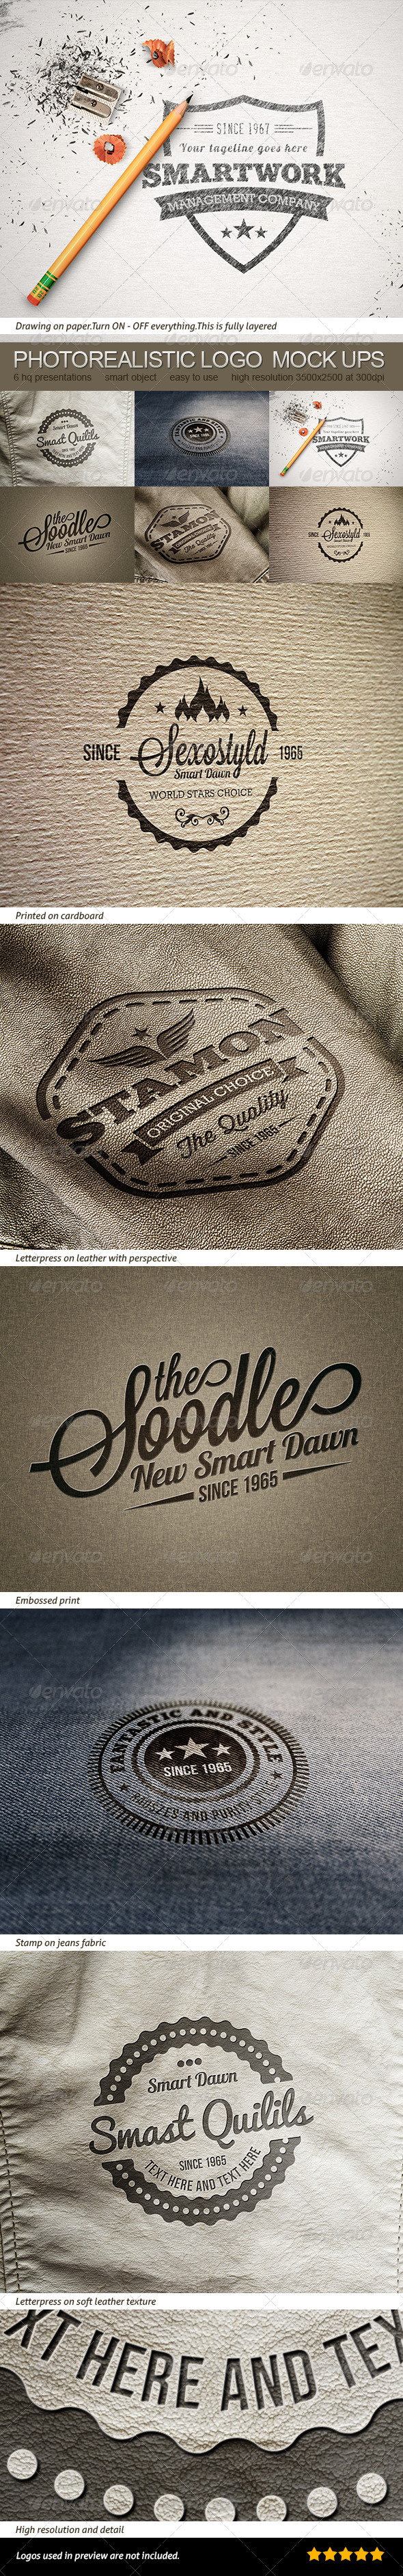 GraphicRiver Photorealistic Logo Or Badge Mock Ups 8144084